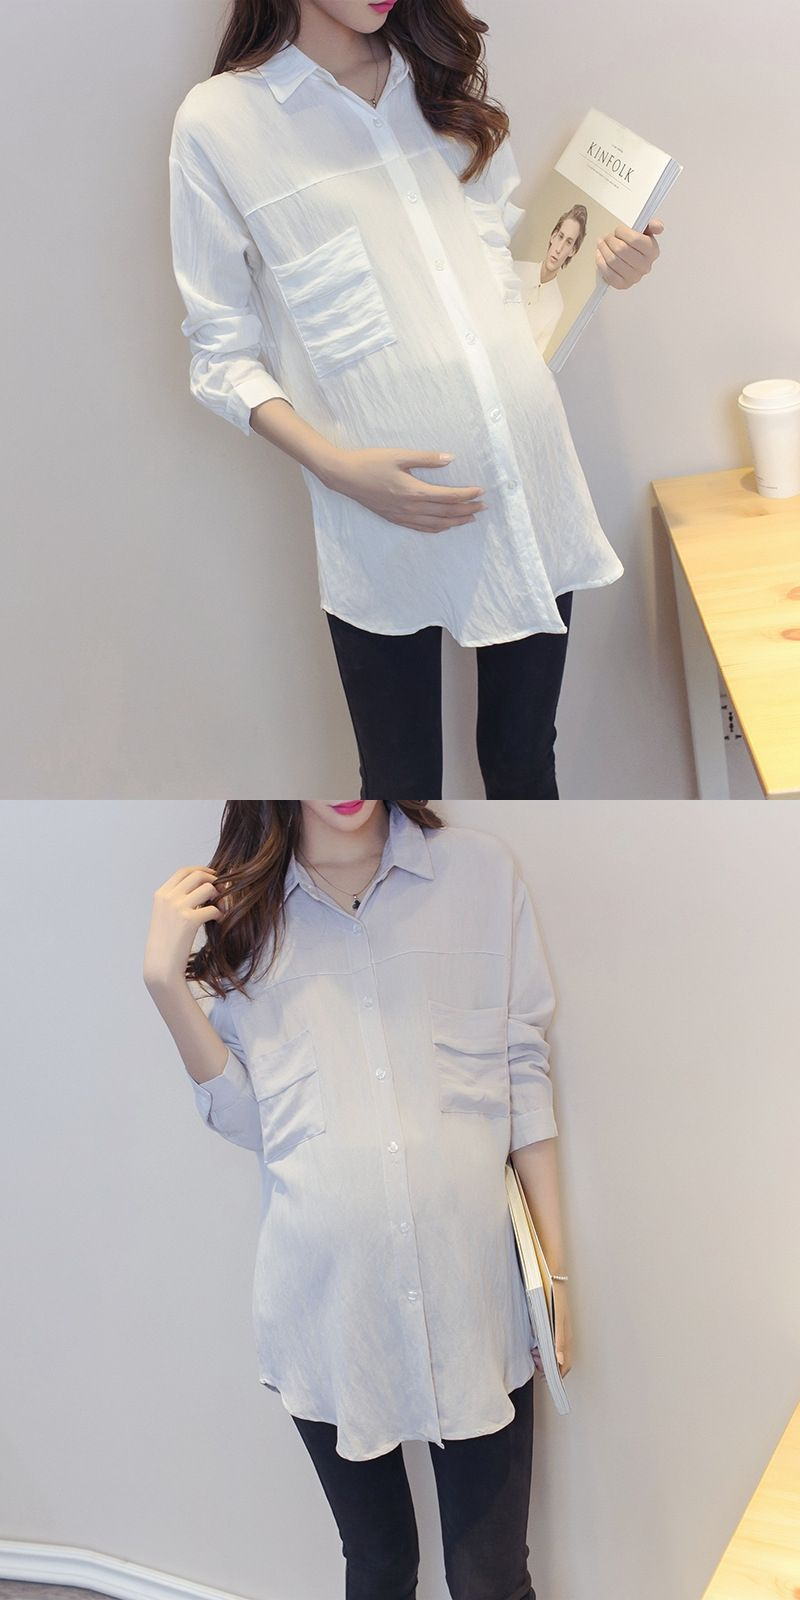 d8056ddf43816 Maternity Shirt Korean Blouse Clothes for Pregnant Women Long Sleeve Maternity  Blouses Pregnancy Clothing Y752